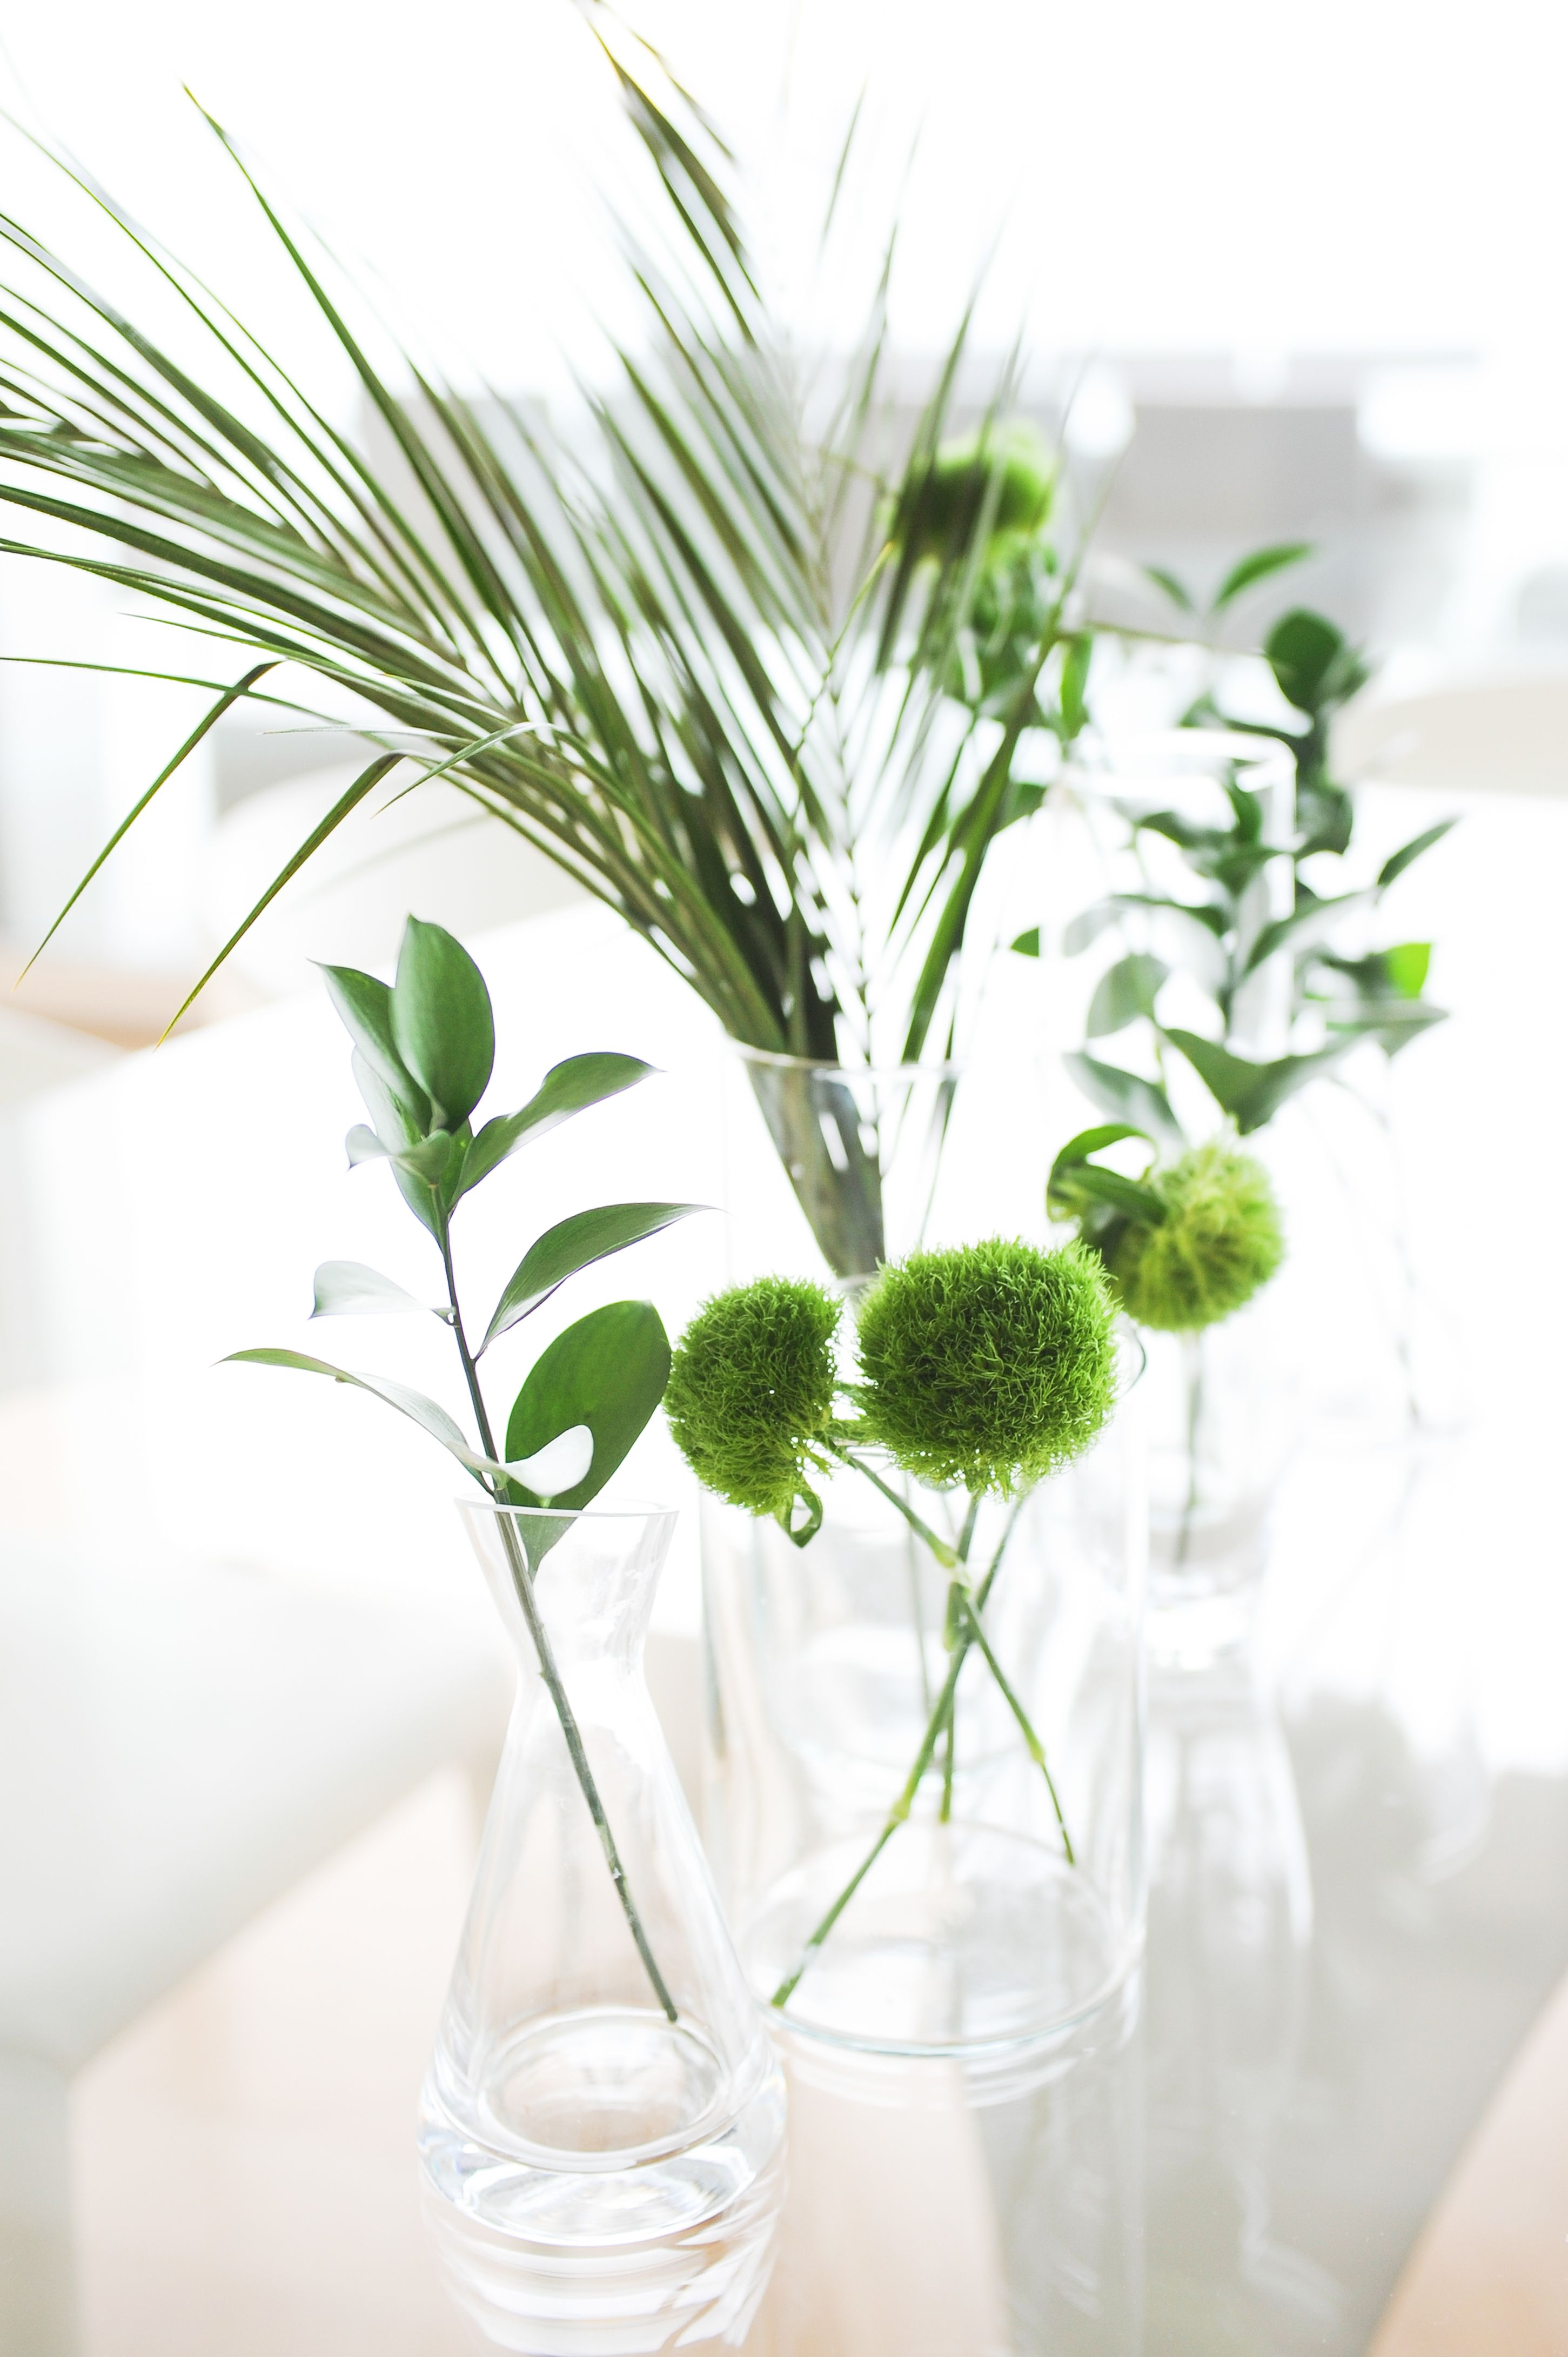 When decorating we can't get enough of plants in glass vases.